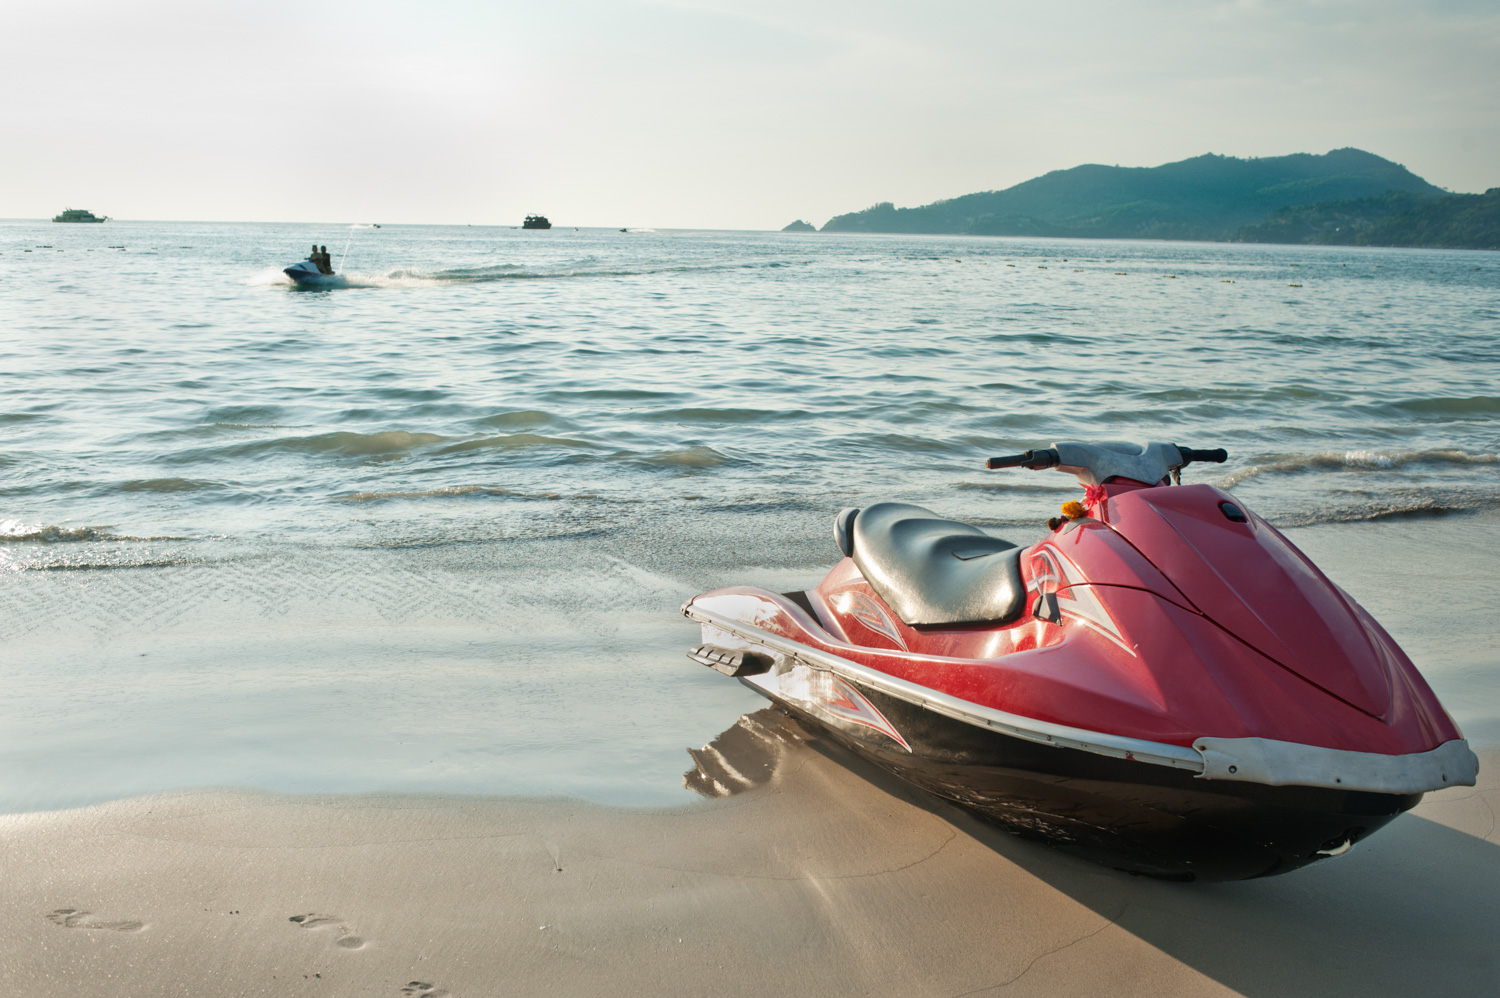 When do you need to obtain a model or property release? Jet Ski on the Beach